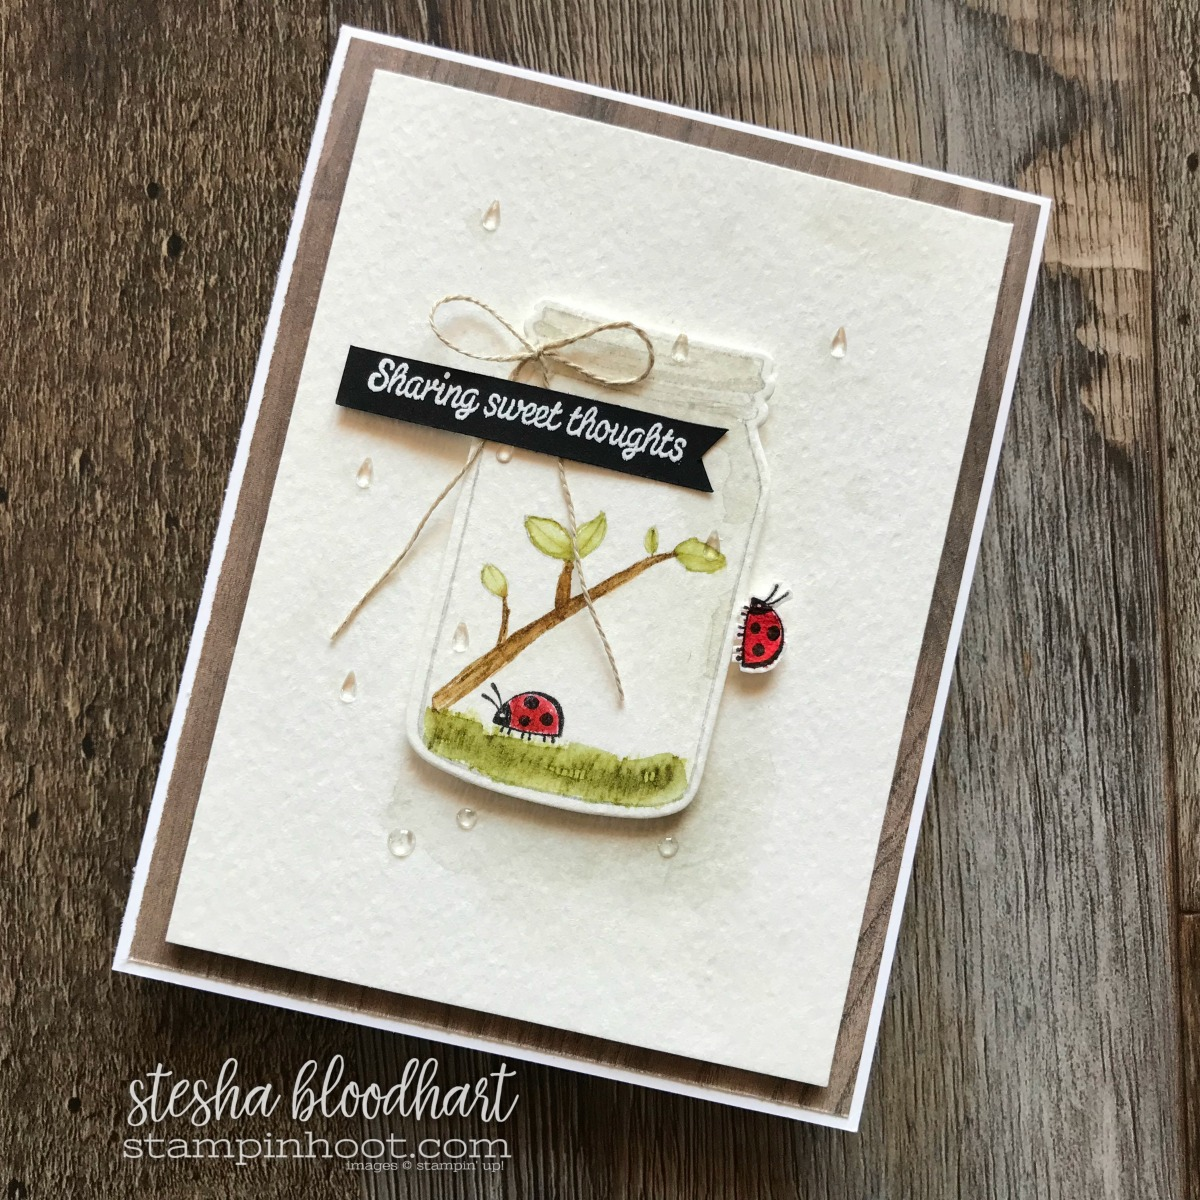 Sharing Sweet Thoughts Stamp Set by Stampin' Up! Proceeds to Ronald McDonald House with Every Purchase. Card Created by Stesha Bloodhart for Spring Has Sprung Pals Blog Hop! #steshabloodhart #stampinhoot